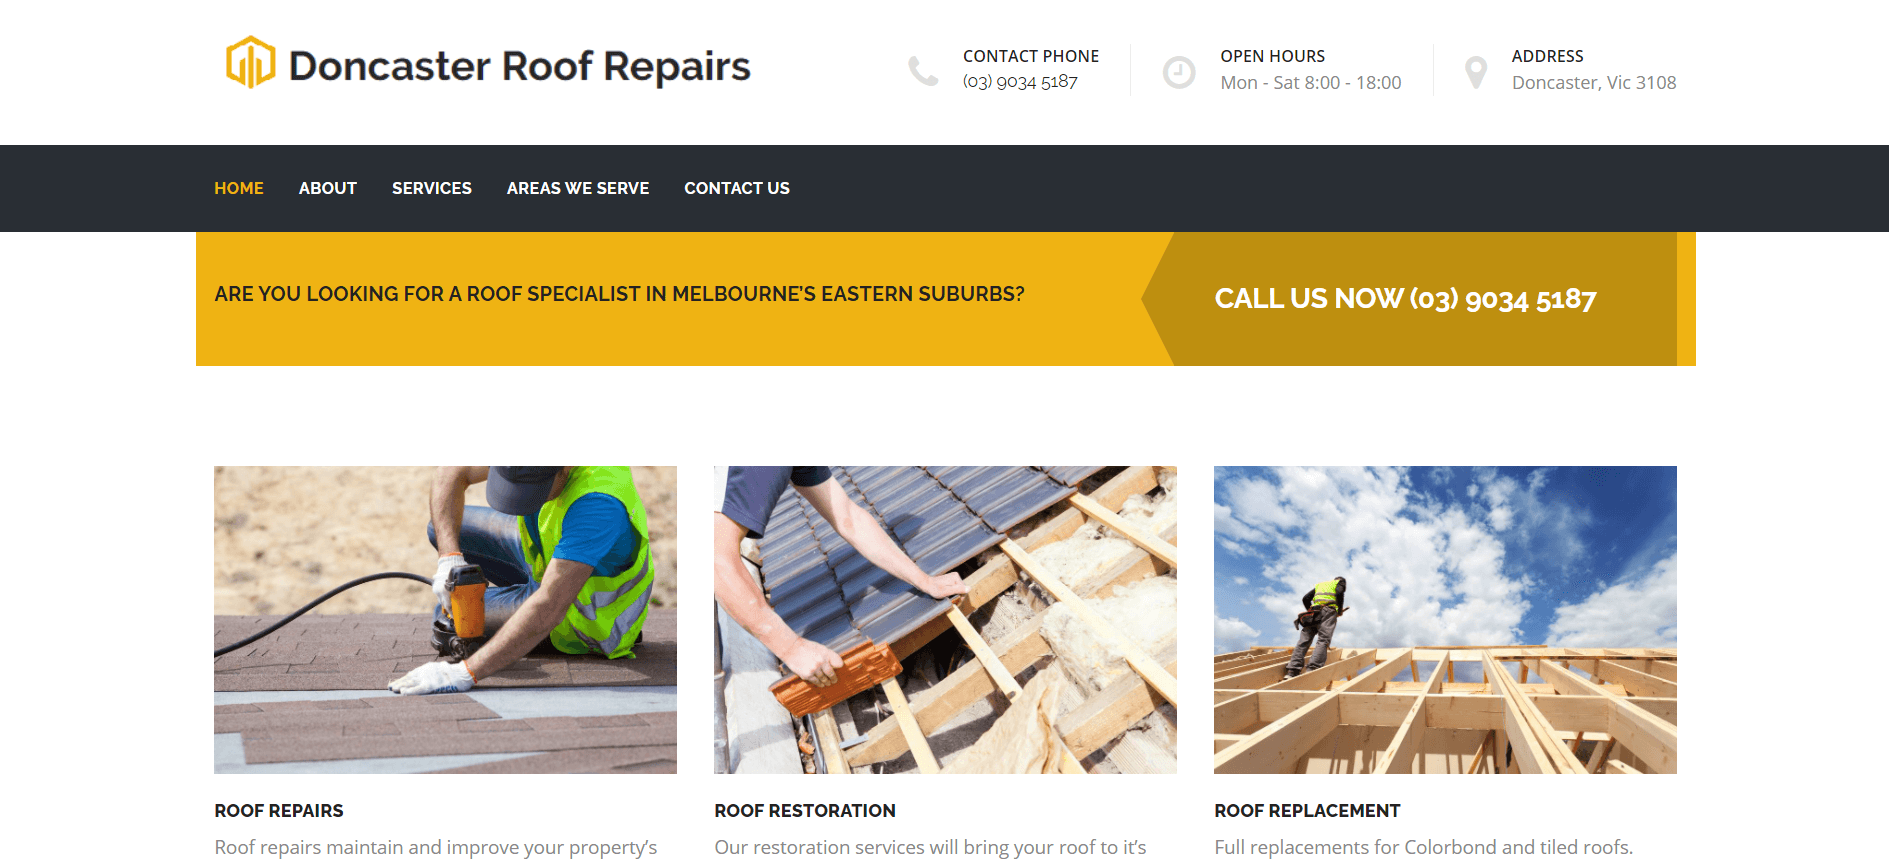 doncaster roof repairs